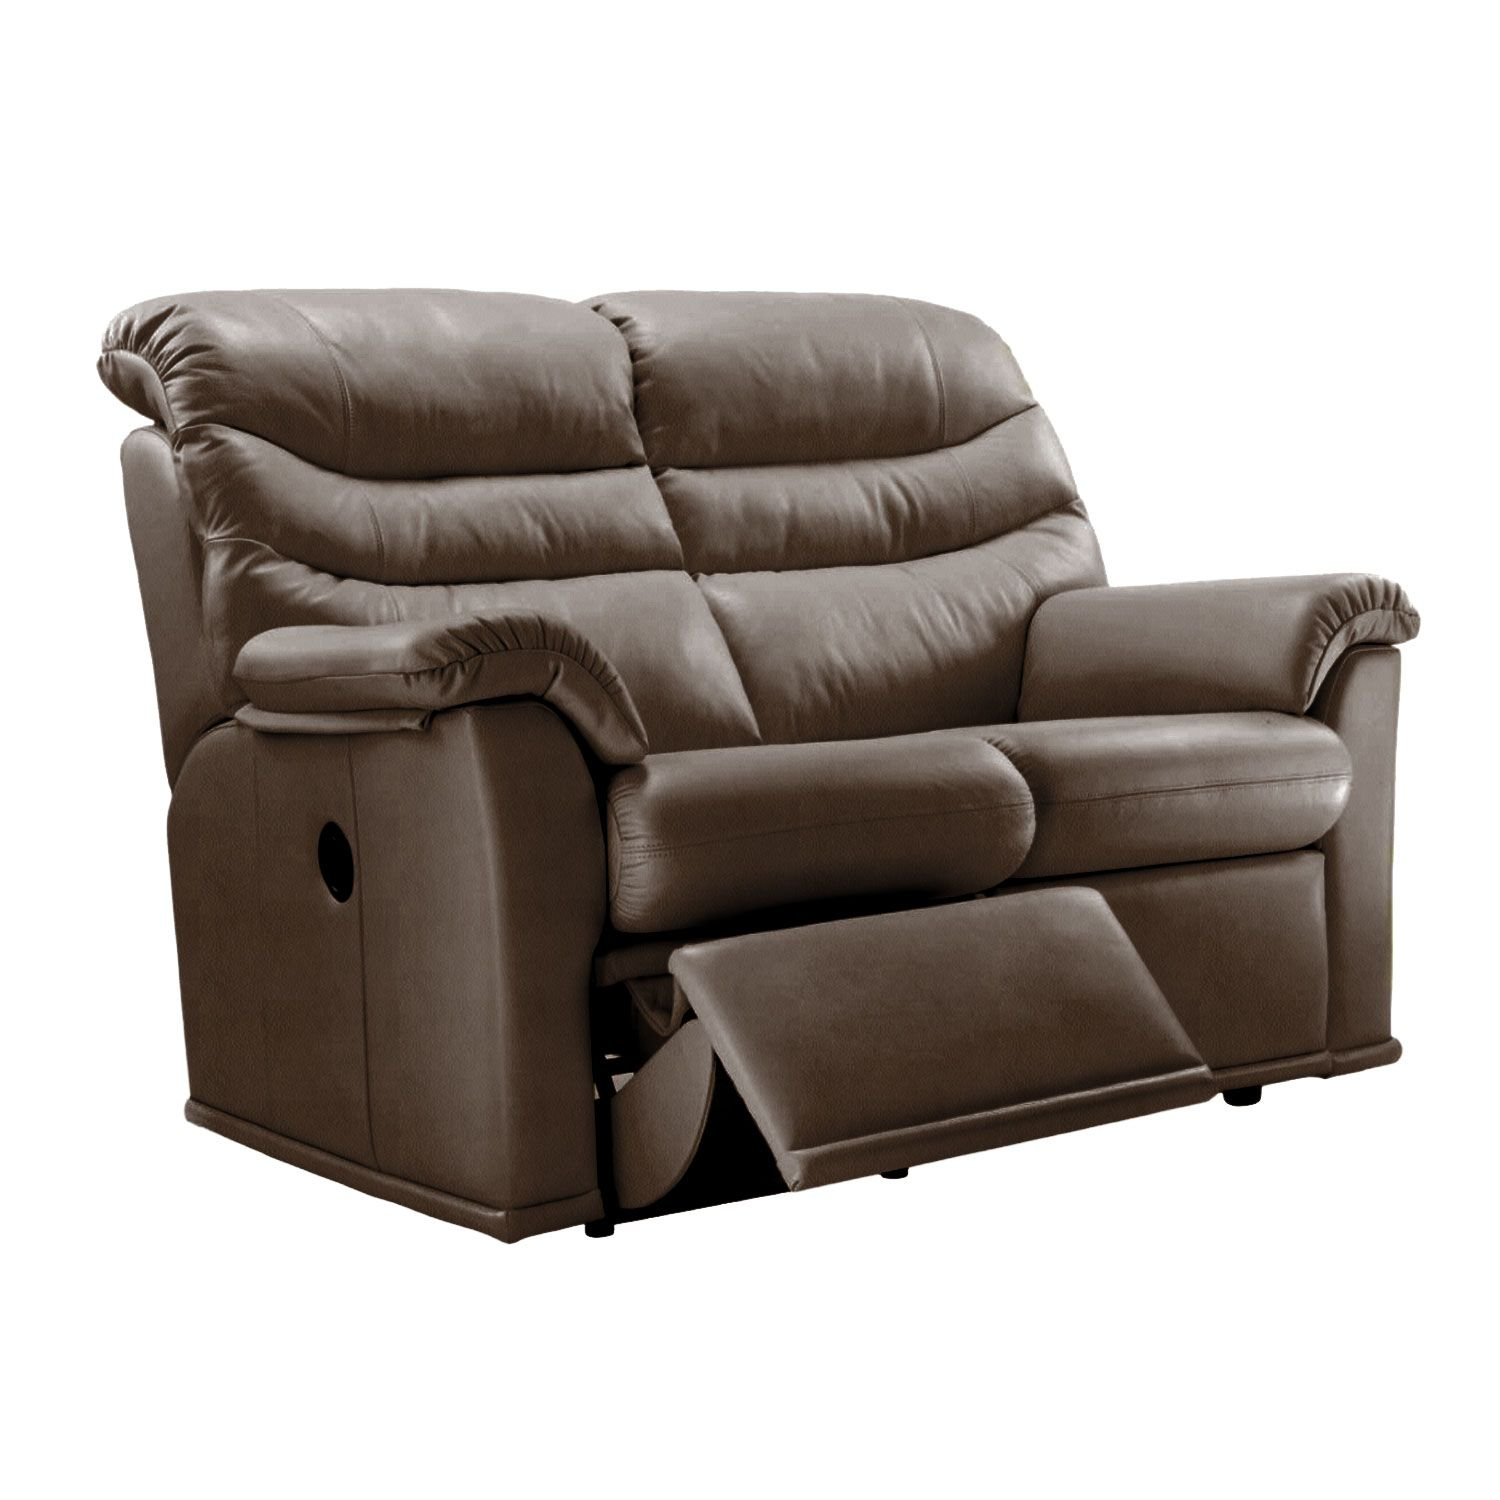 Image of G Plan Malvern 17 2 Seater Right Manual Recliner Leather Sofa